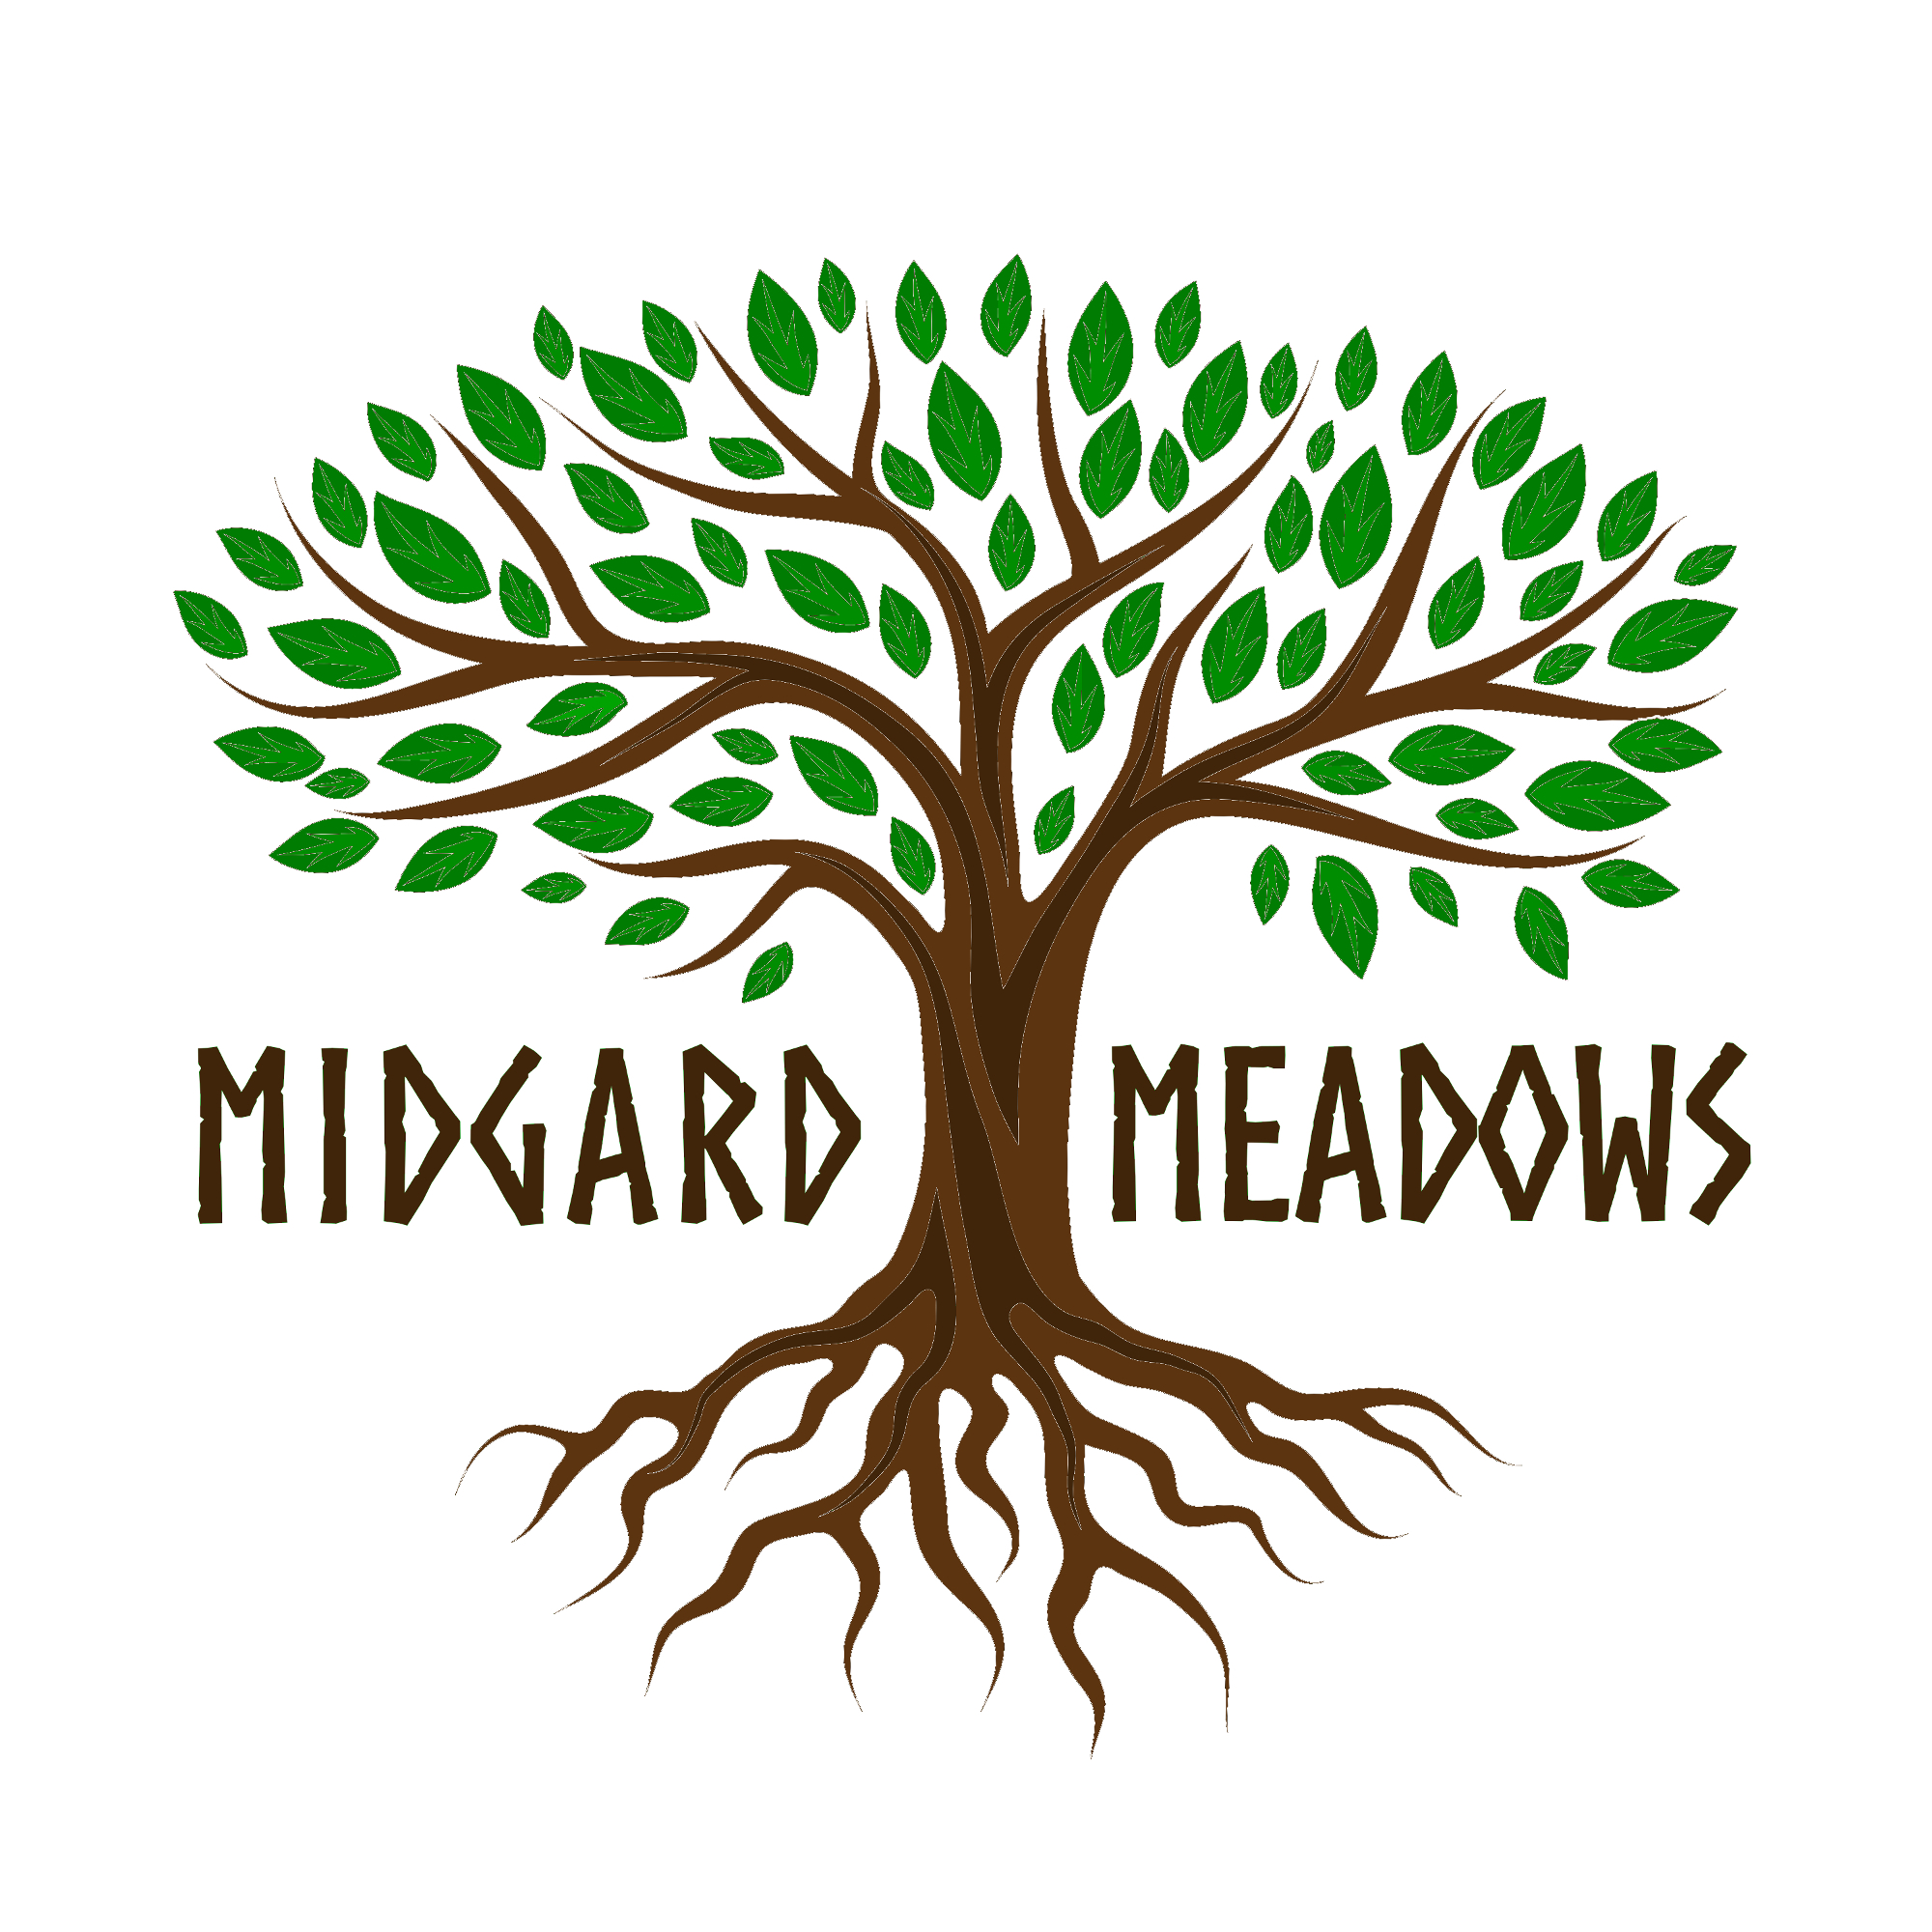 Midgard Meadows